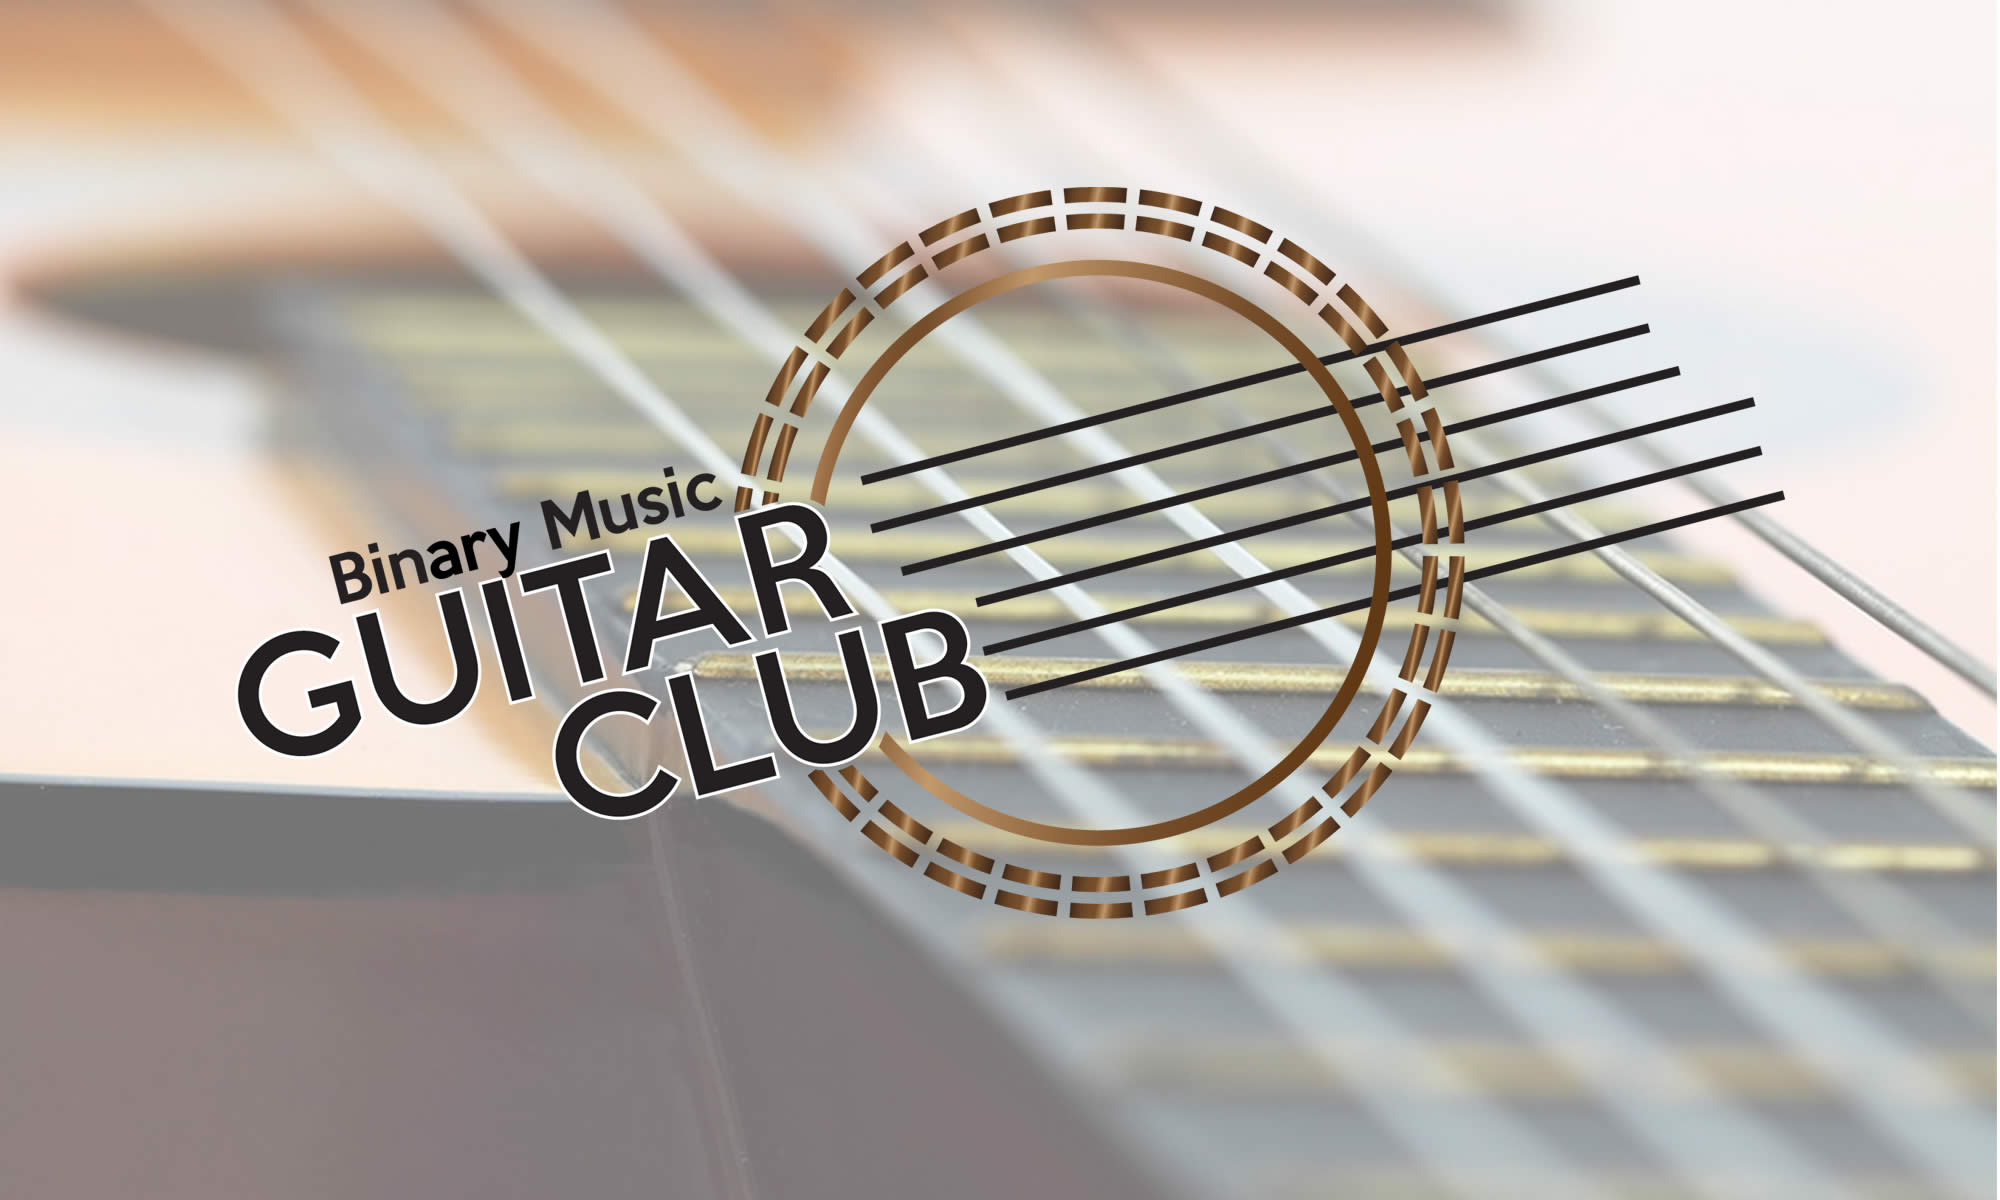 Binary Music Guitar Club